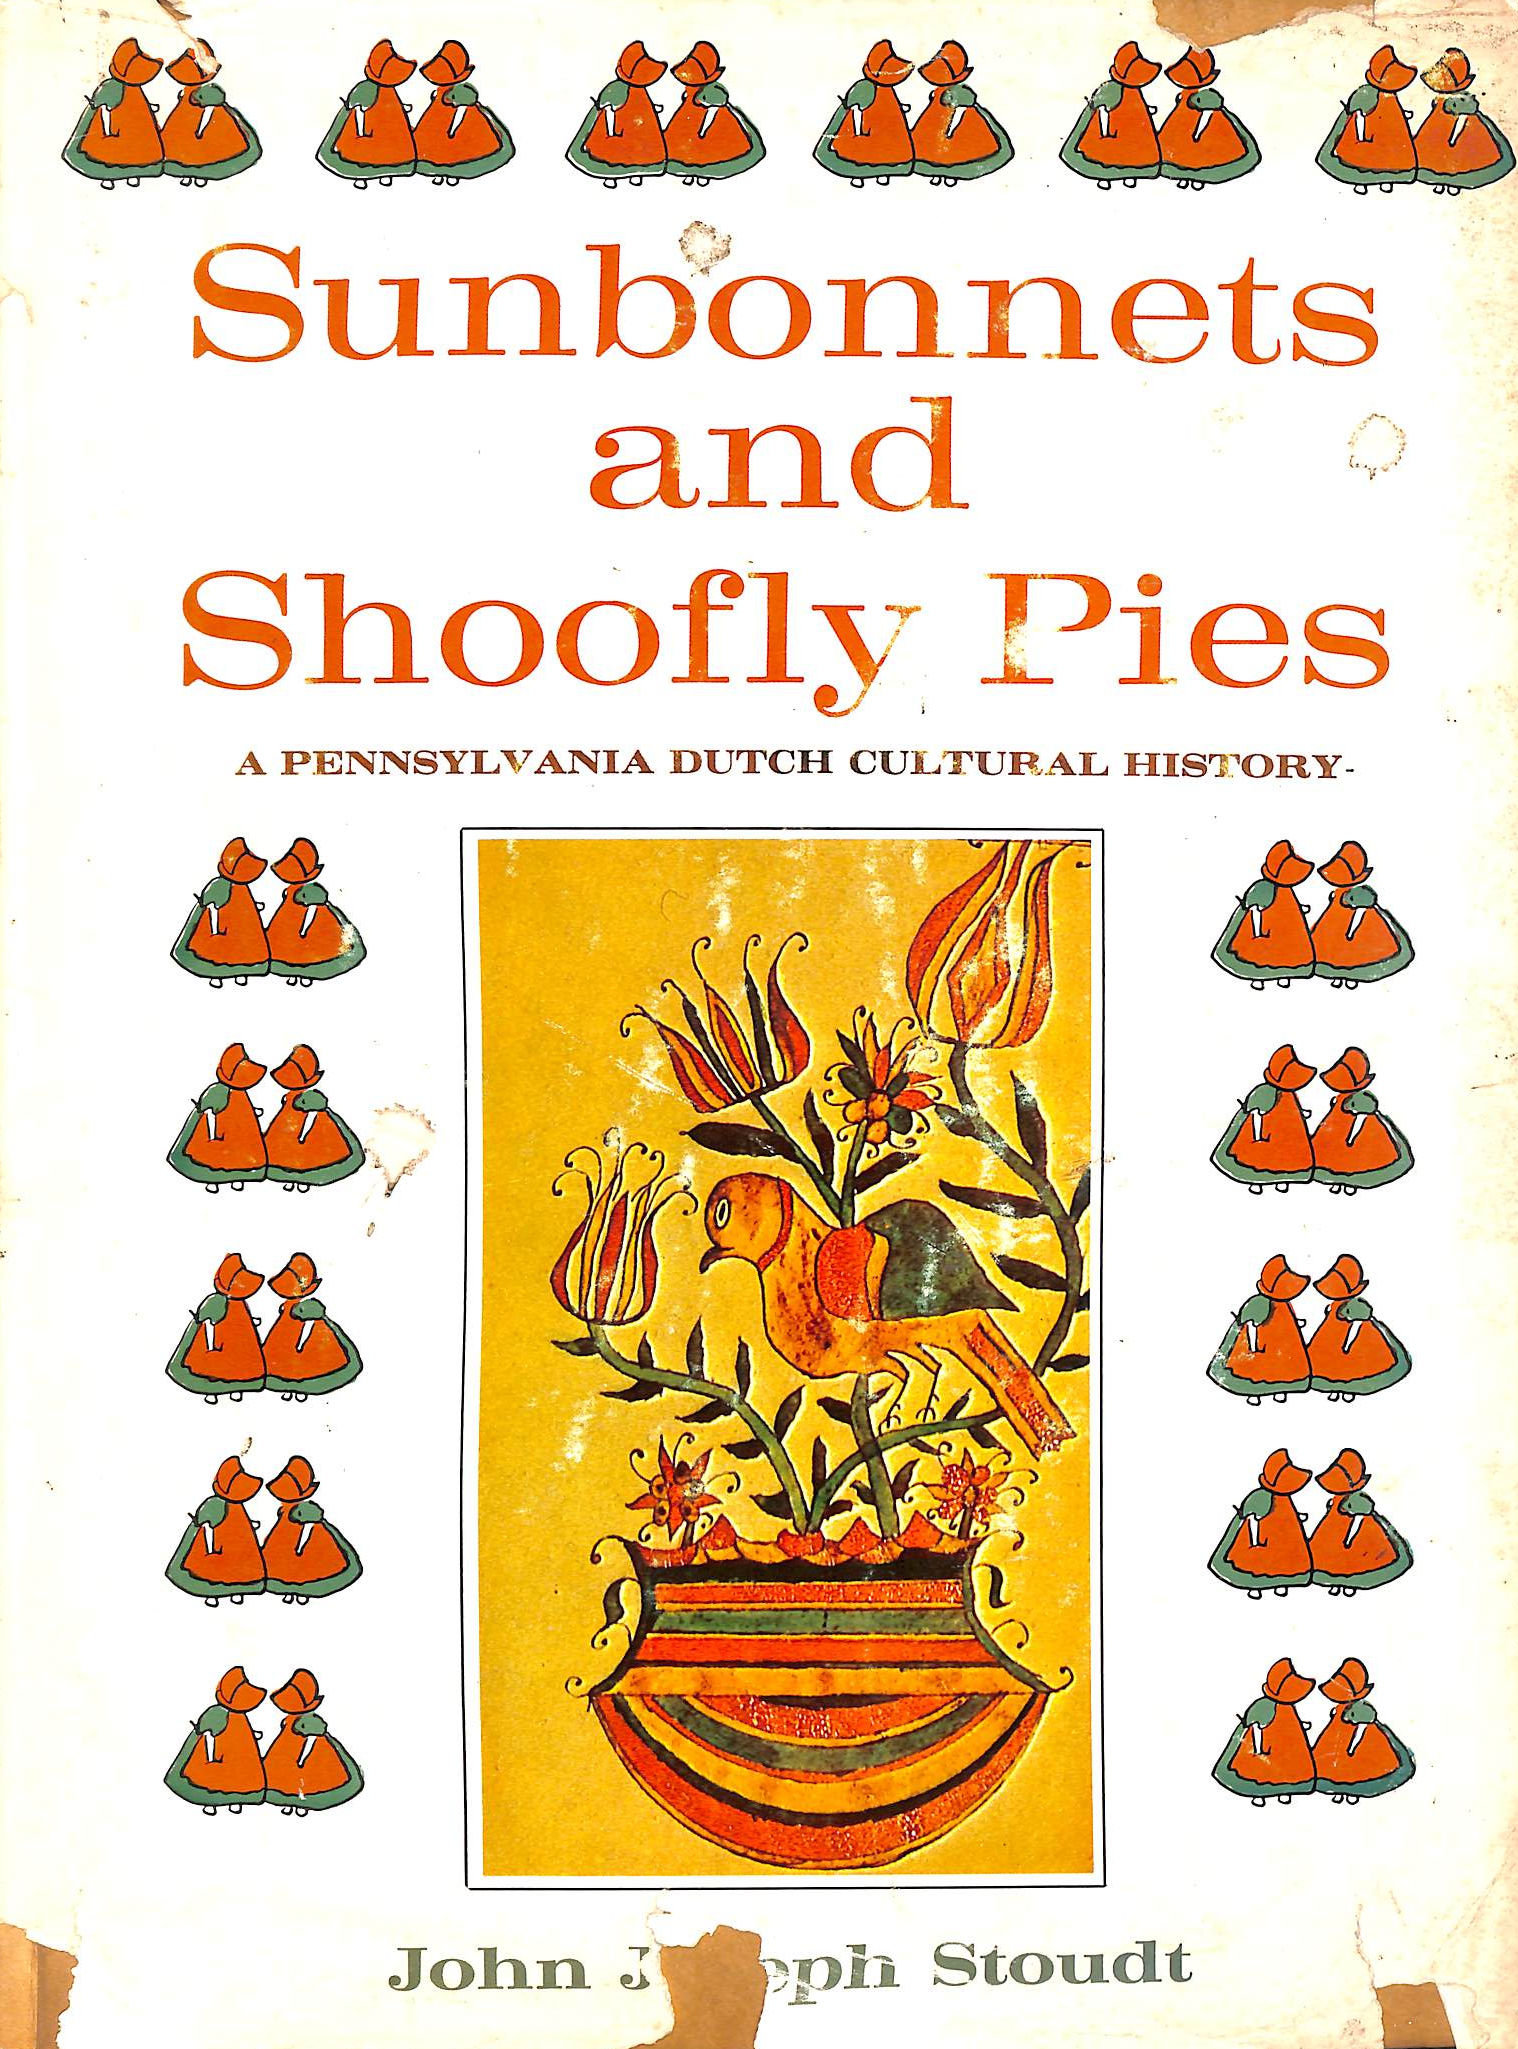 Image for Sunbonnets and Shoofly Pies a Pennsylvania Dutch Cultural History